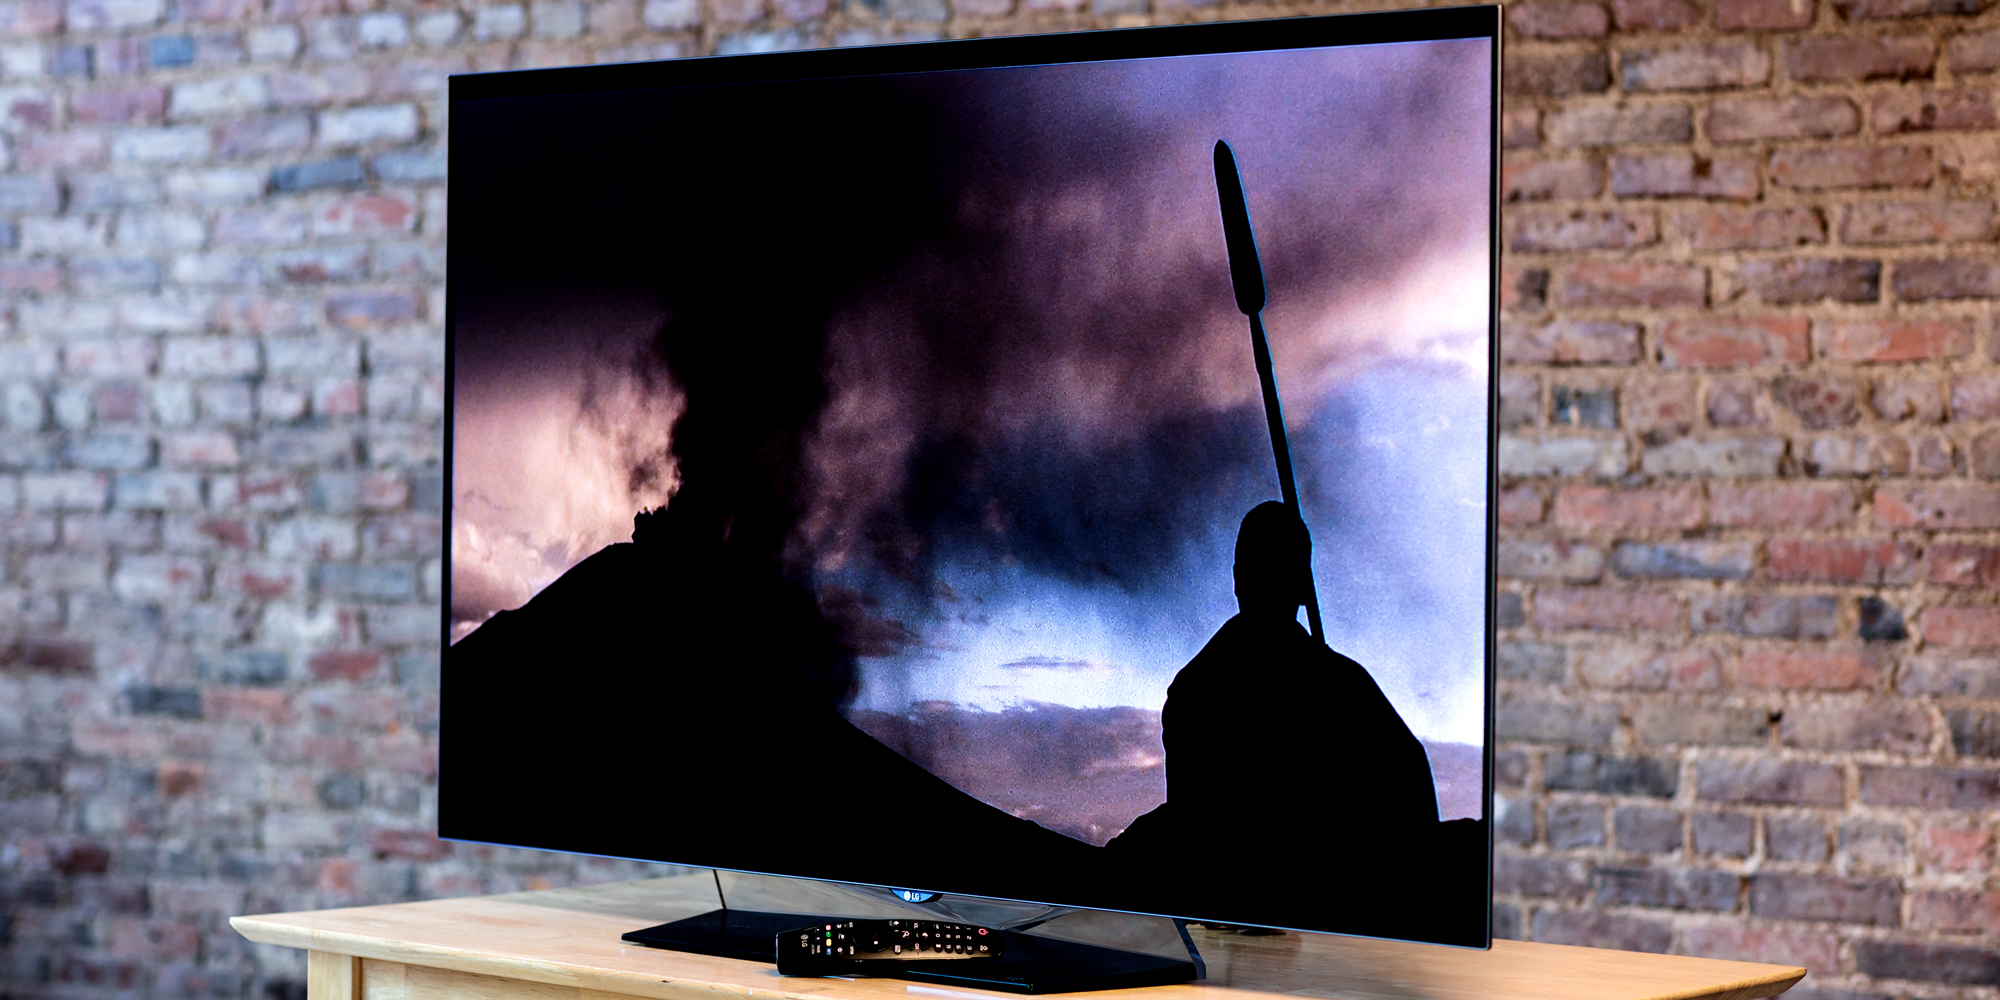 Review: PlayStation 4 Pro is all about 4K TV